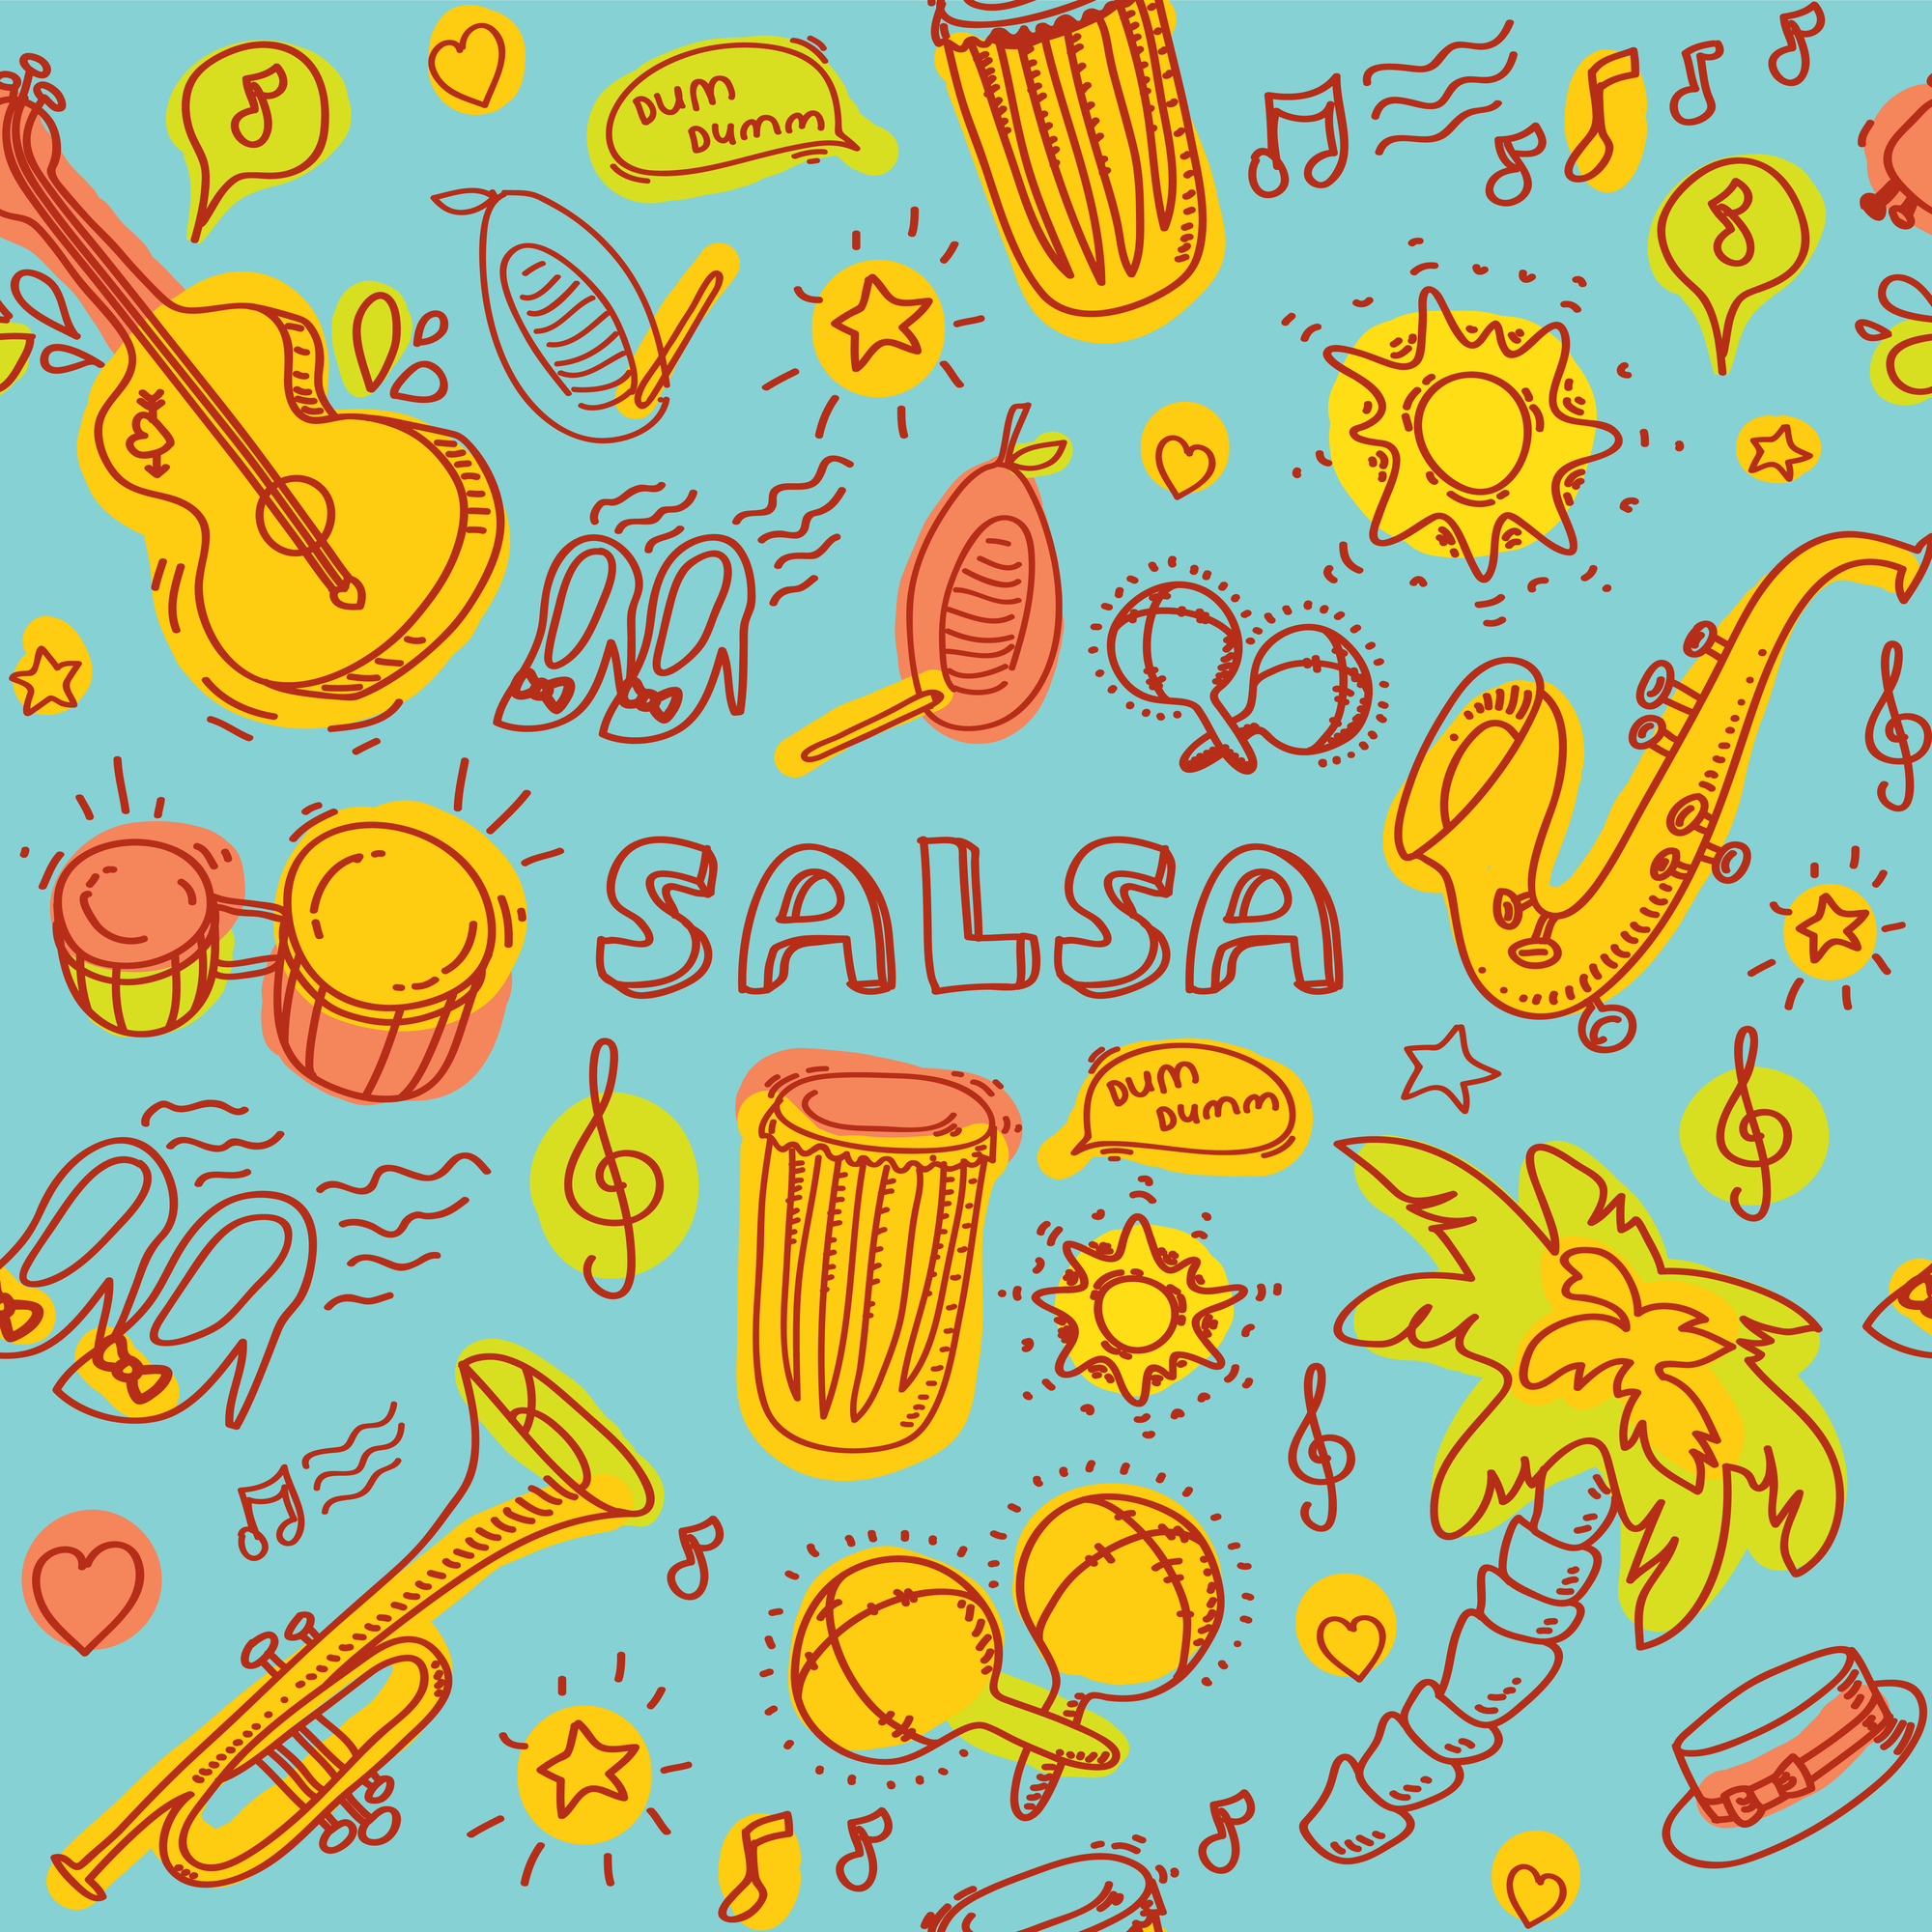 Salsa music and dance colored illustration with musical instruments with palms, etc. Vector modern and stylish design elements set